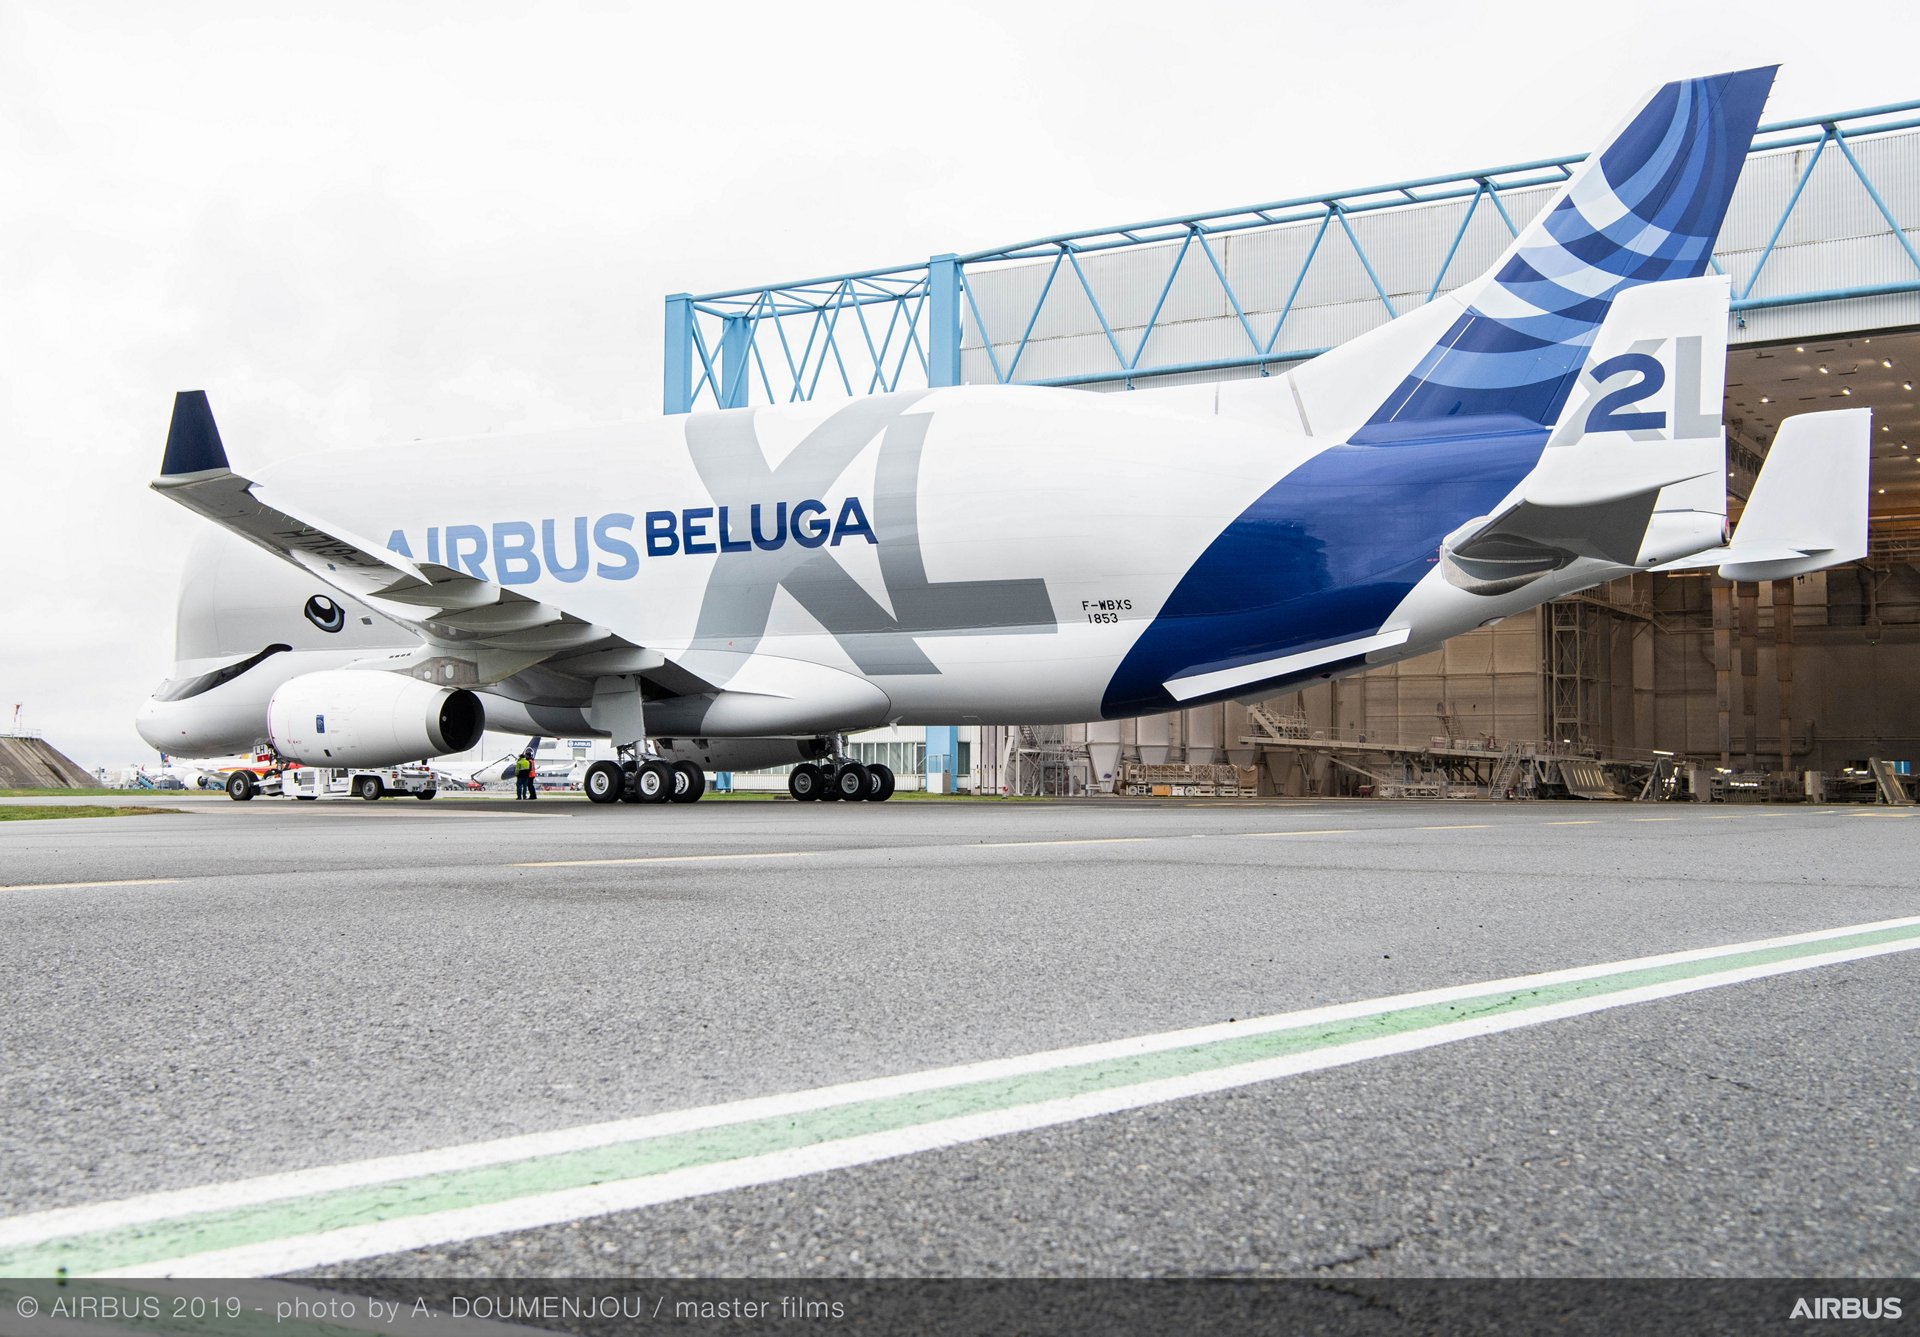 Airbus' second Beluga receives its livery